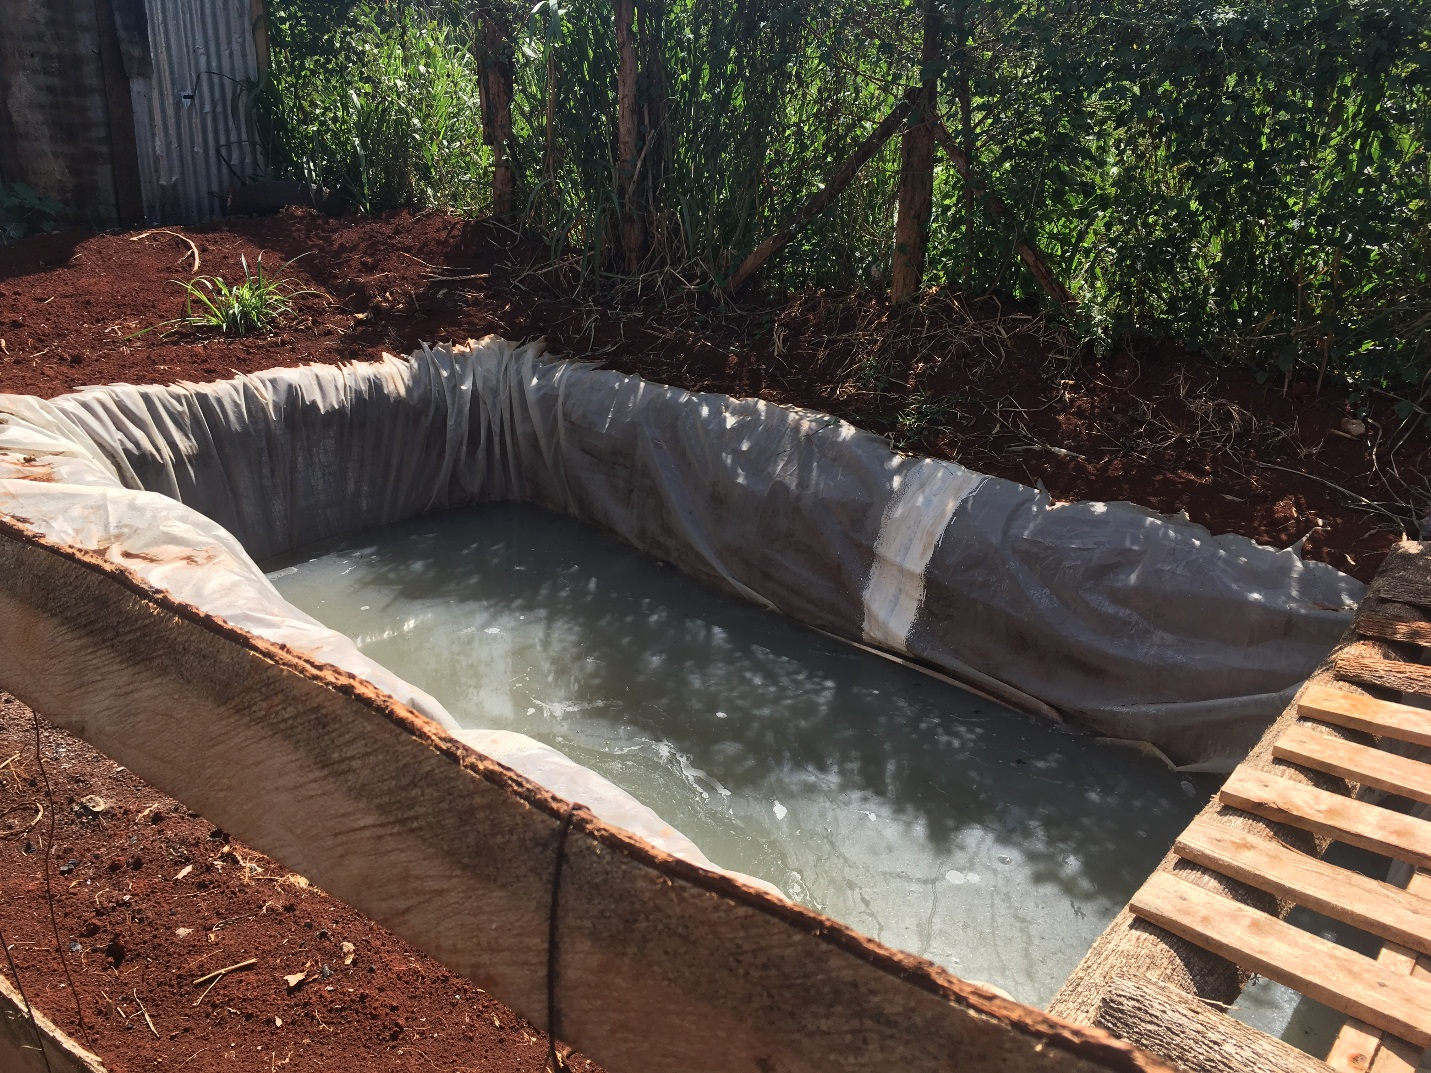 Fish farming initiated by Kiini Sustainable Initiative